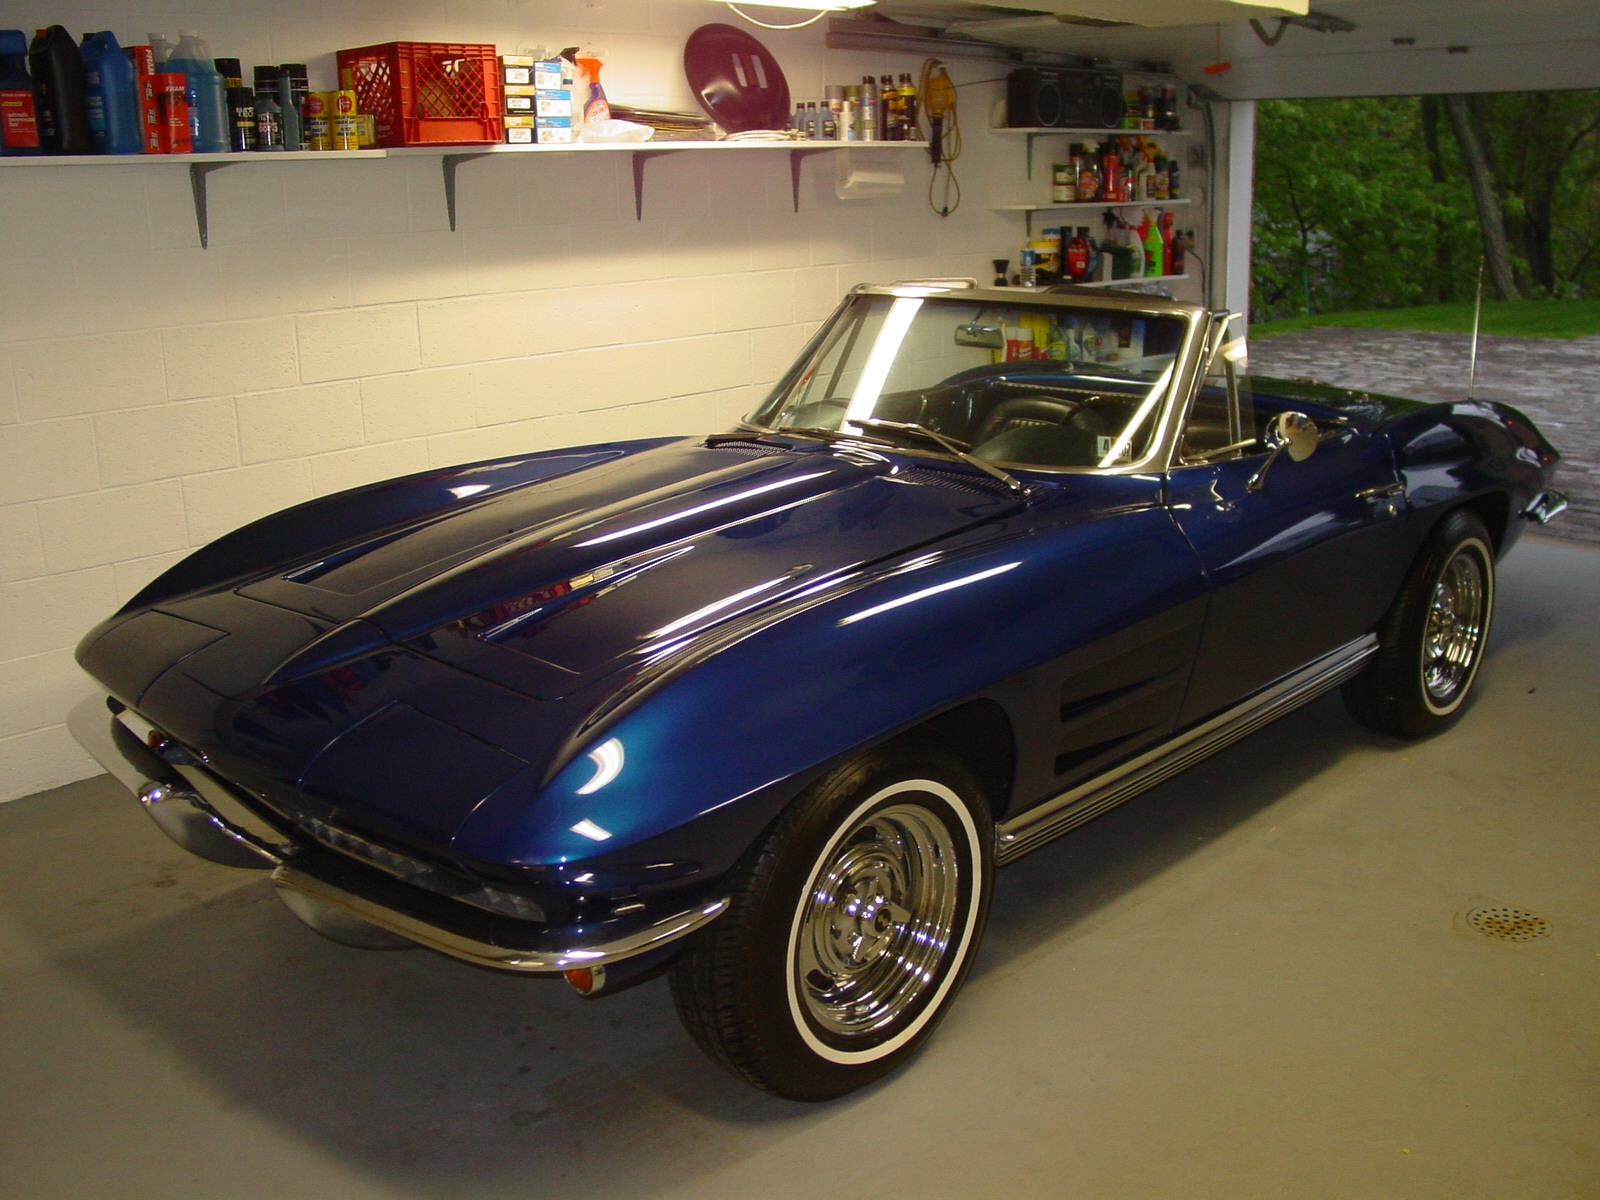 1964 Chevrolet Corvette Convertible Roadster, 1964 Corvette 350/350 - muncie 4spd - MSD Dist. & ignition - paint is Corvette 2002/3 Electron Blue, exterior